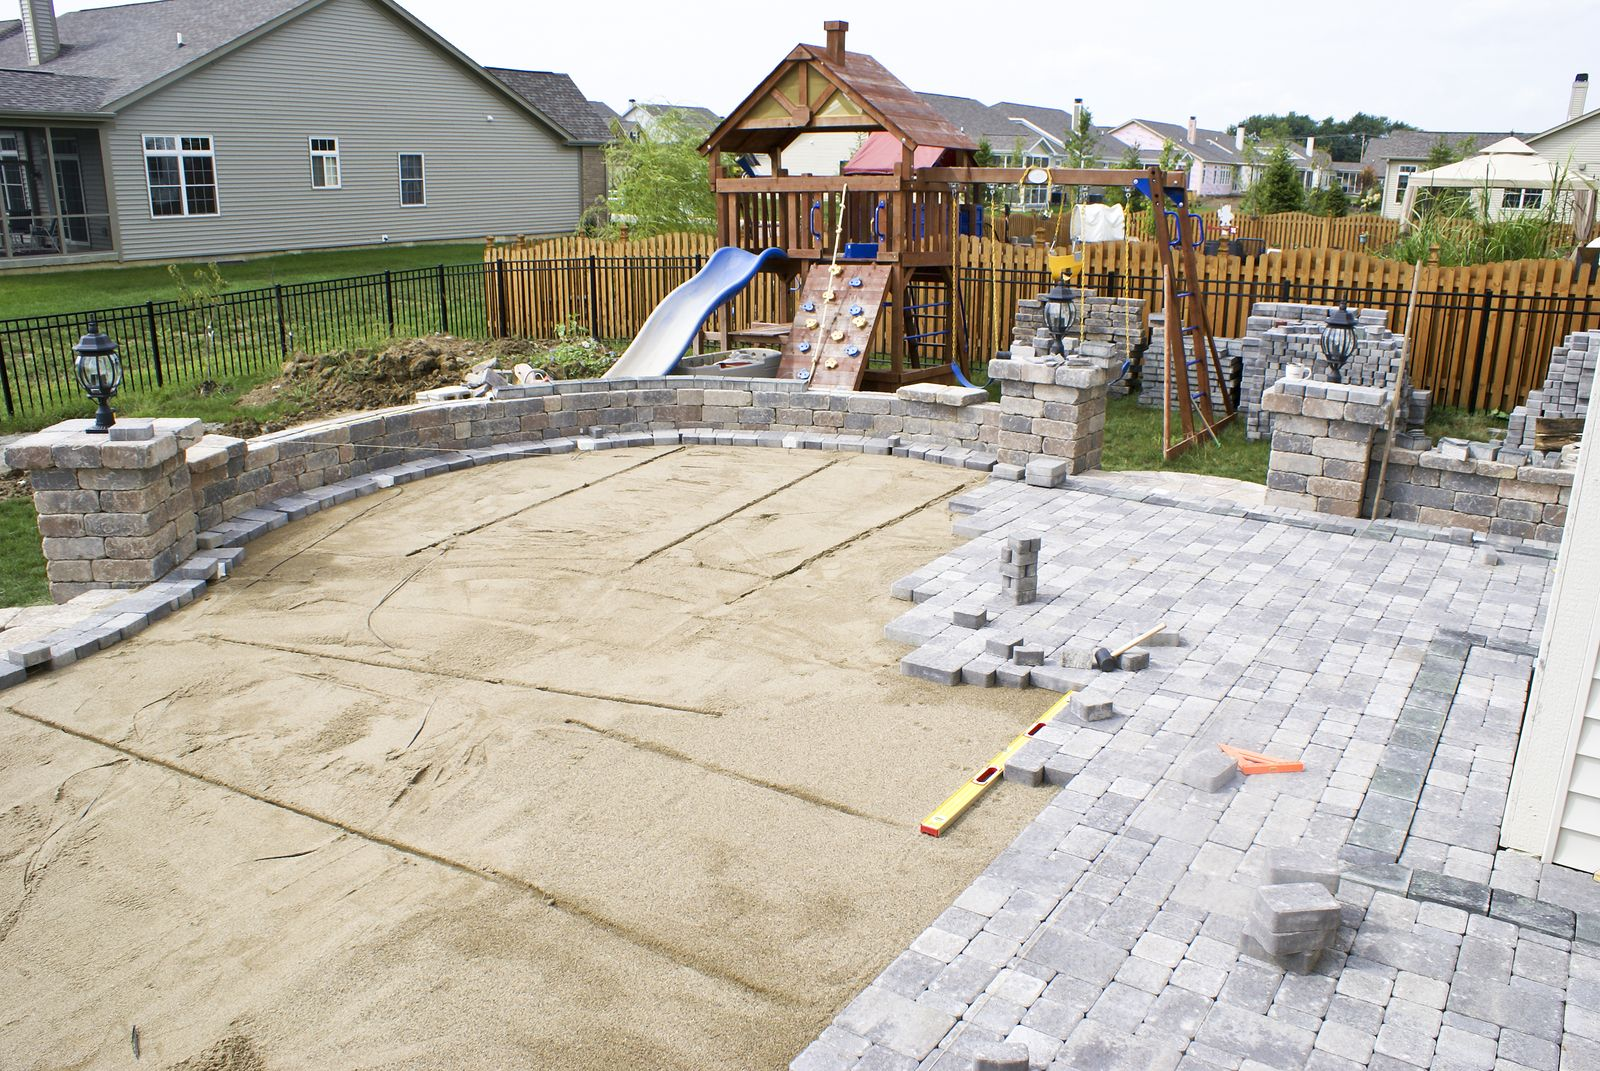 Patio with pavers designs complete your omaha backyard for Paved garden designs ideas